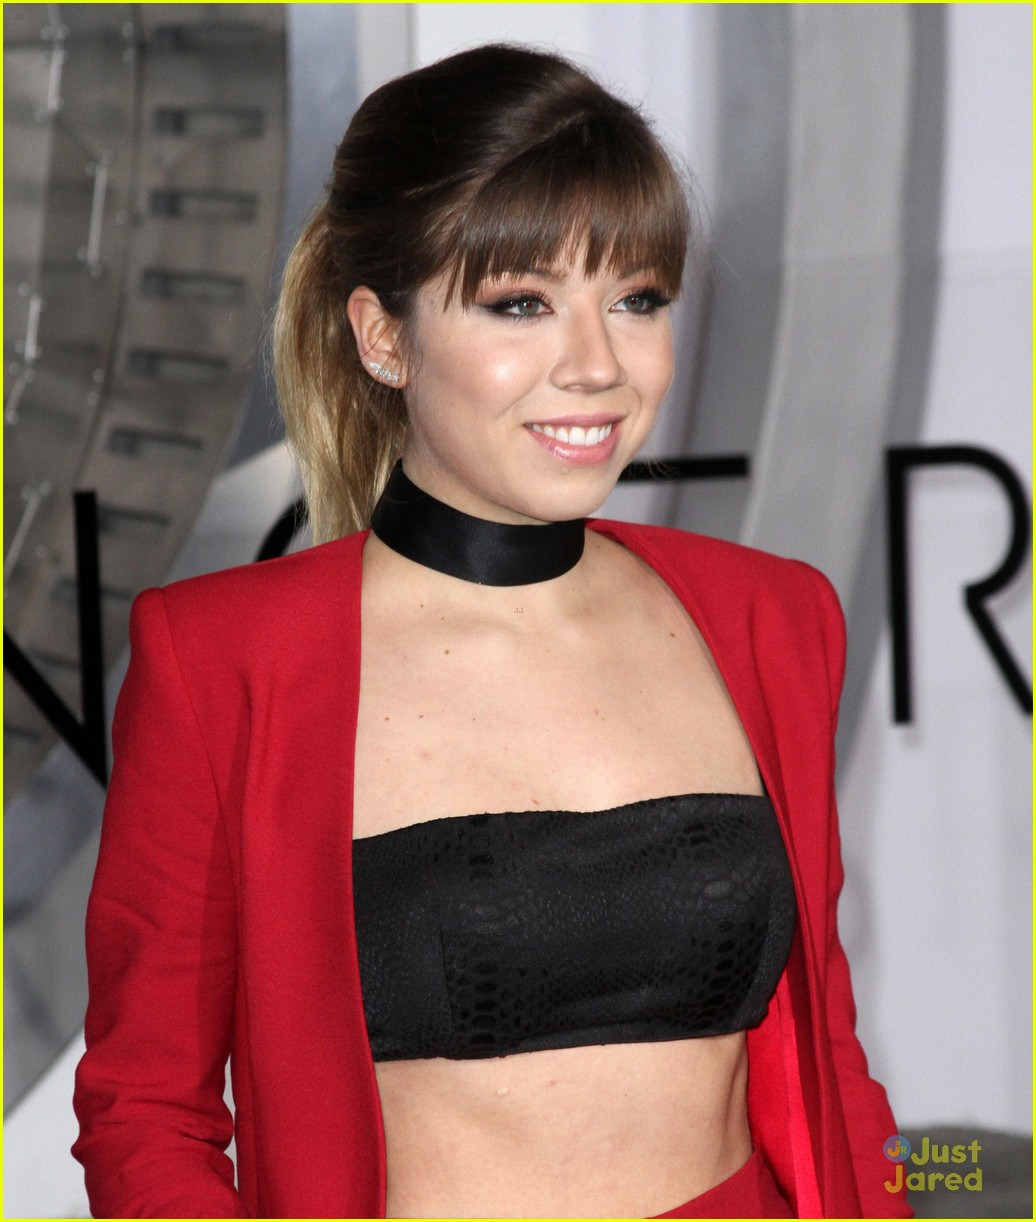 Jennette mccurdy makes a red suit statement at passengers jennette mccurdy makes a red suit statement at passengers premiere photo 1058634 photo gallery just jared jr voltagebd